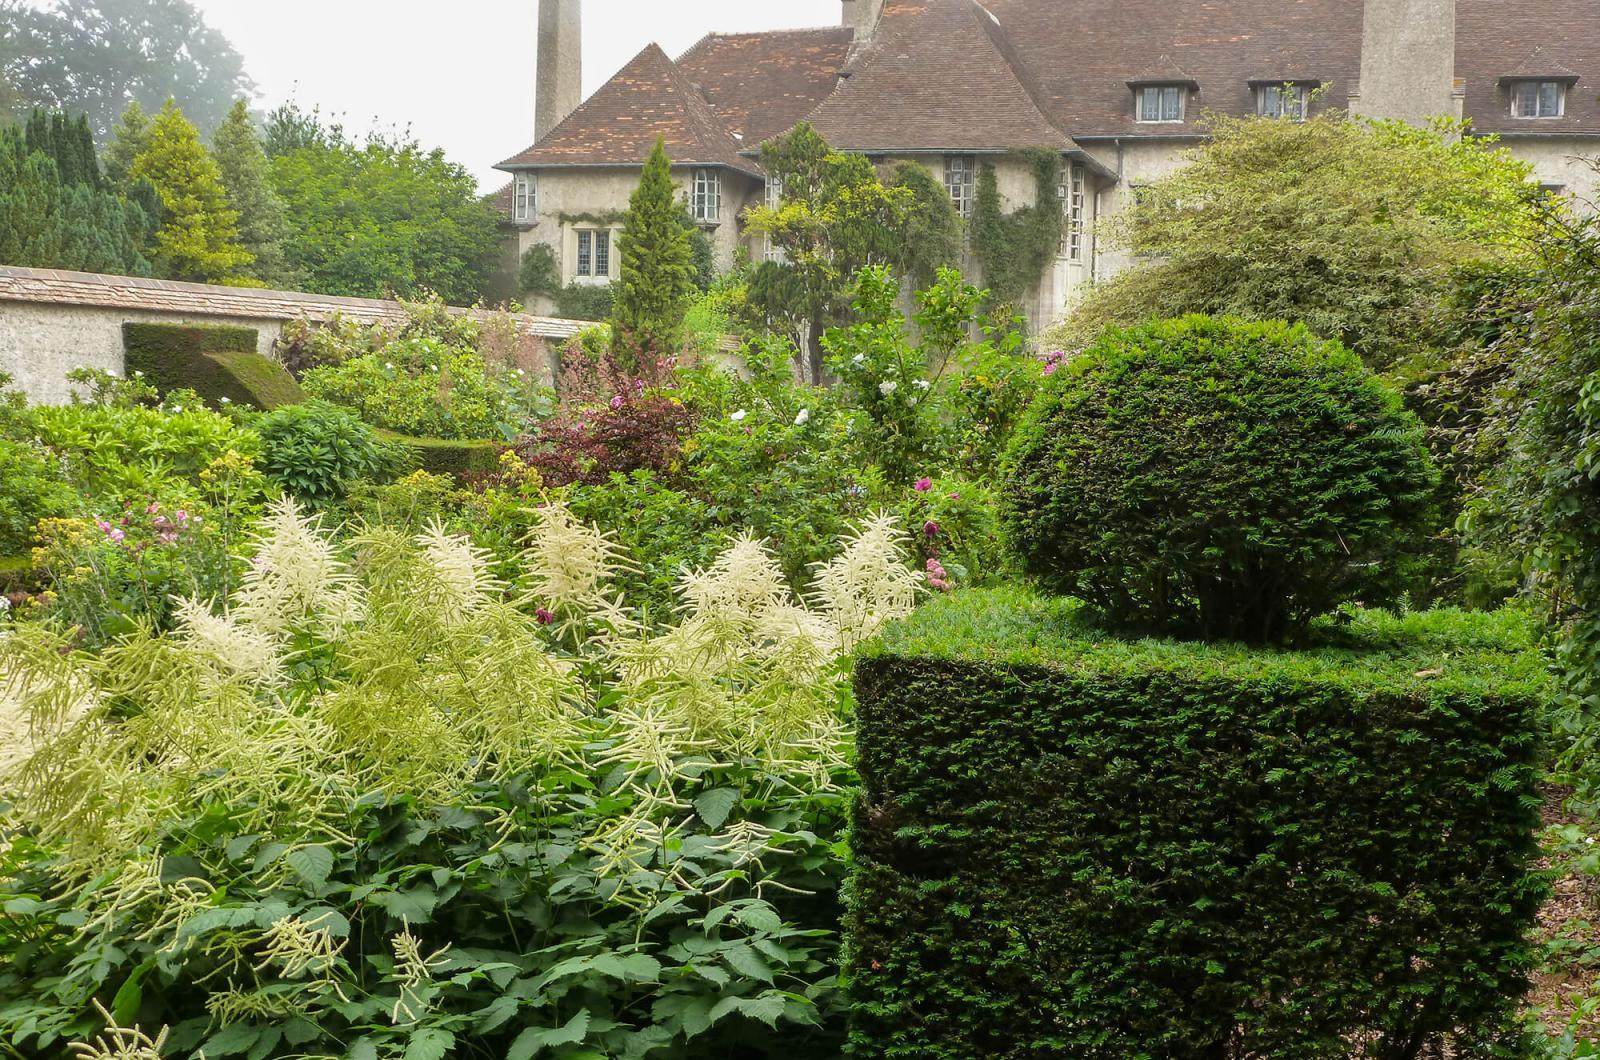 Photo #1: Le Bois des Moutiers is a country manor and garden built by Guillaume Mallet starting in 1898, with the Arts and Crafts design team of Gertrude Jekyll and Edwin Lutyens.